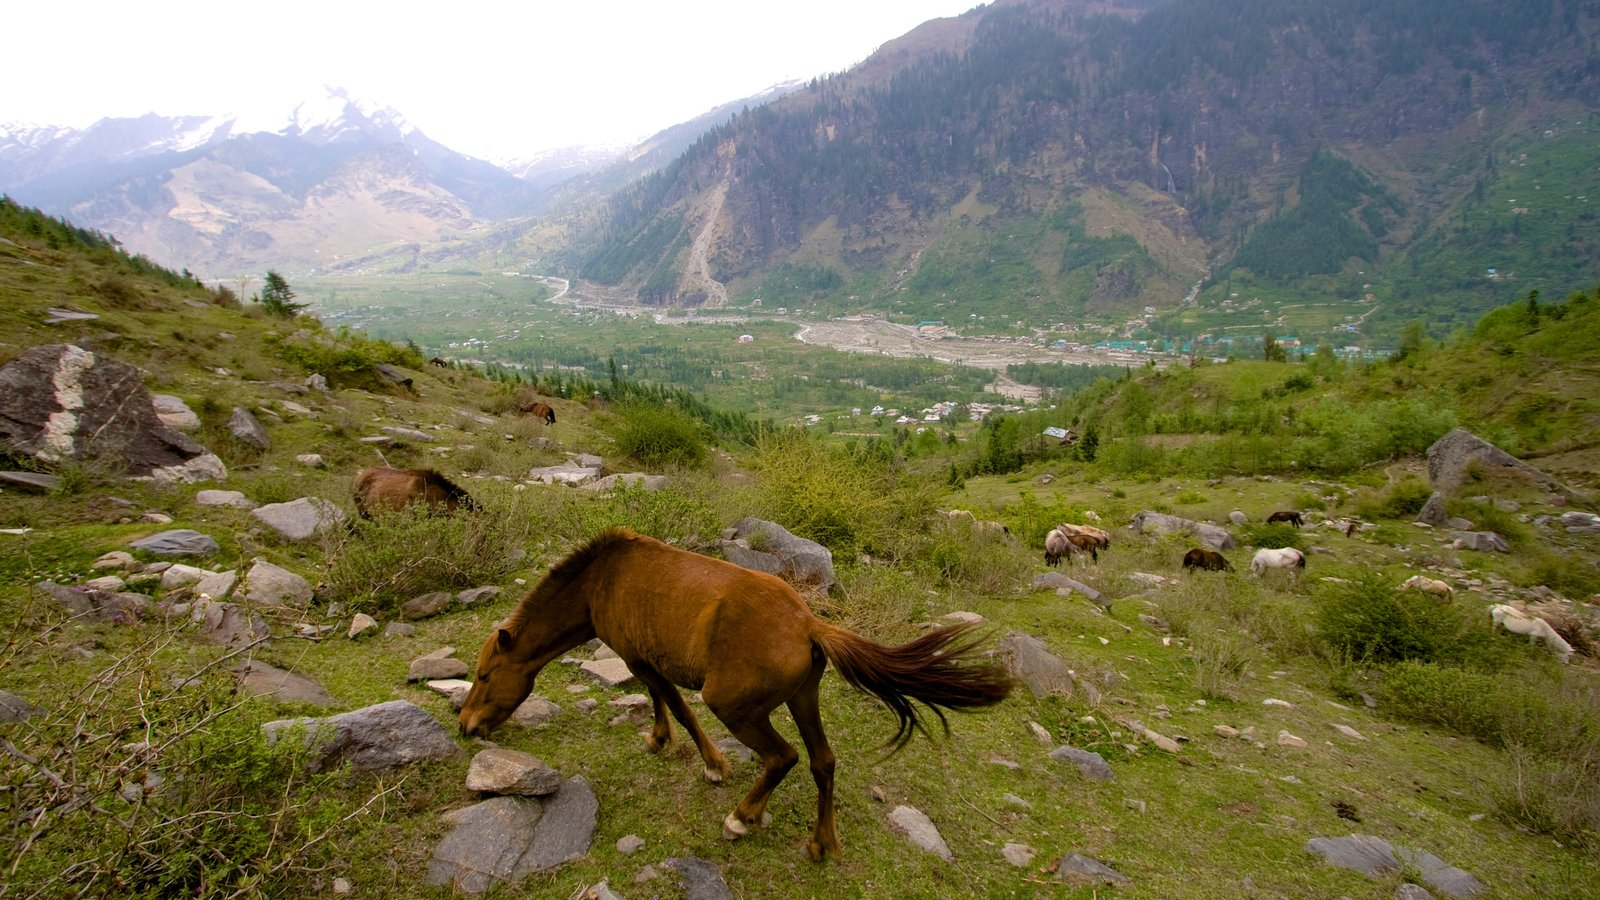 Manali showing land animals, mountains and tranquil scenes